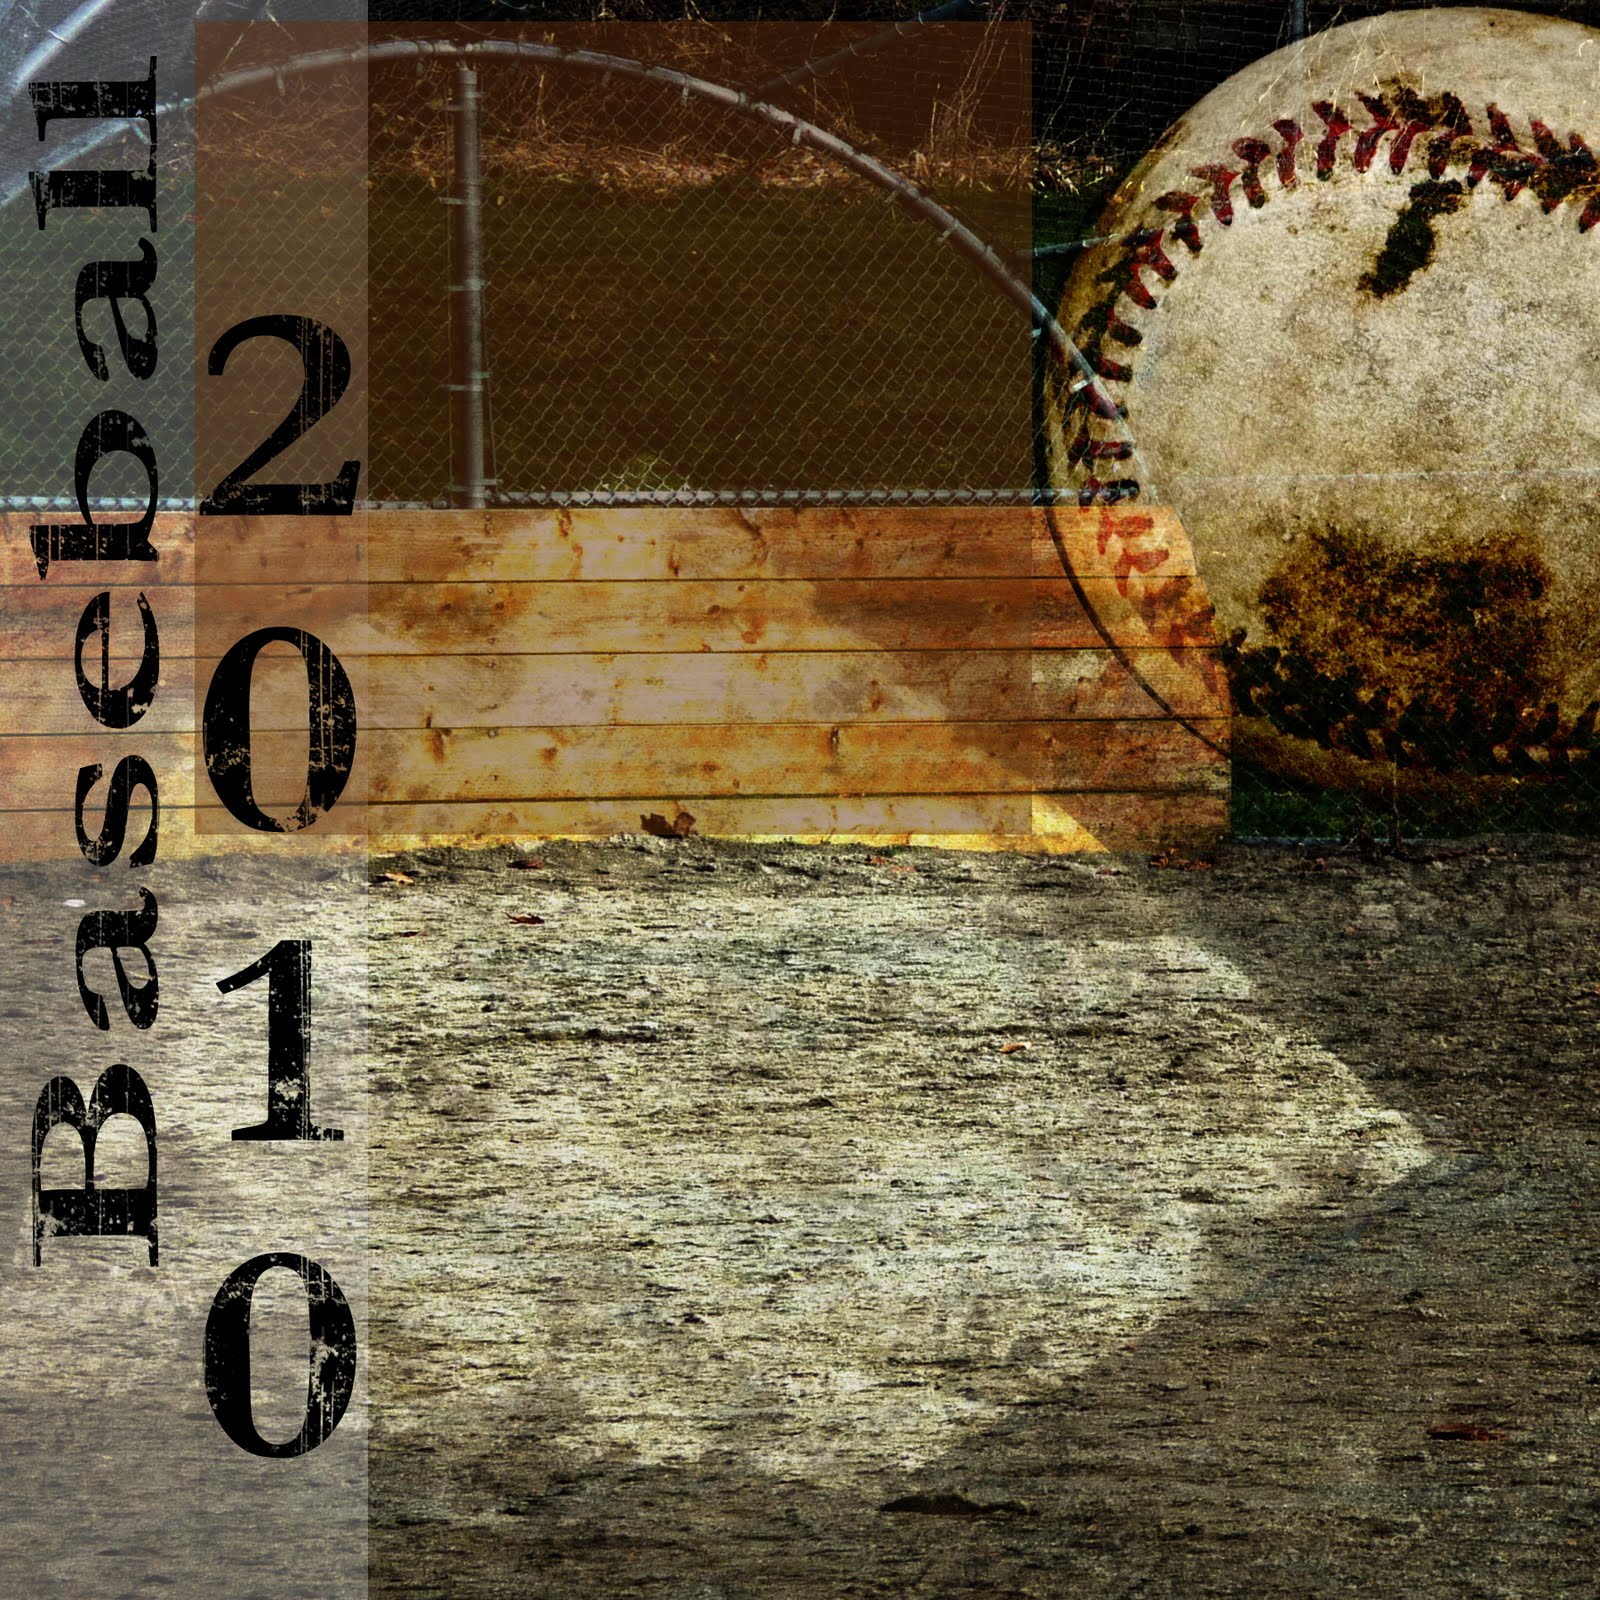 15 Baseball Backgrounds For Photoshop Images